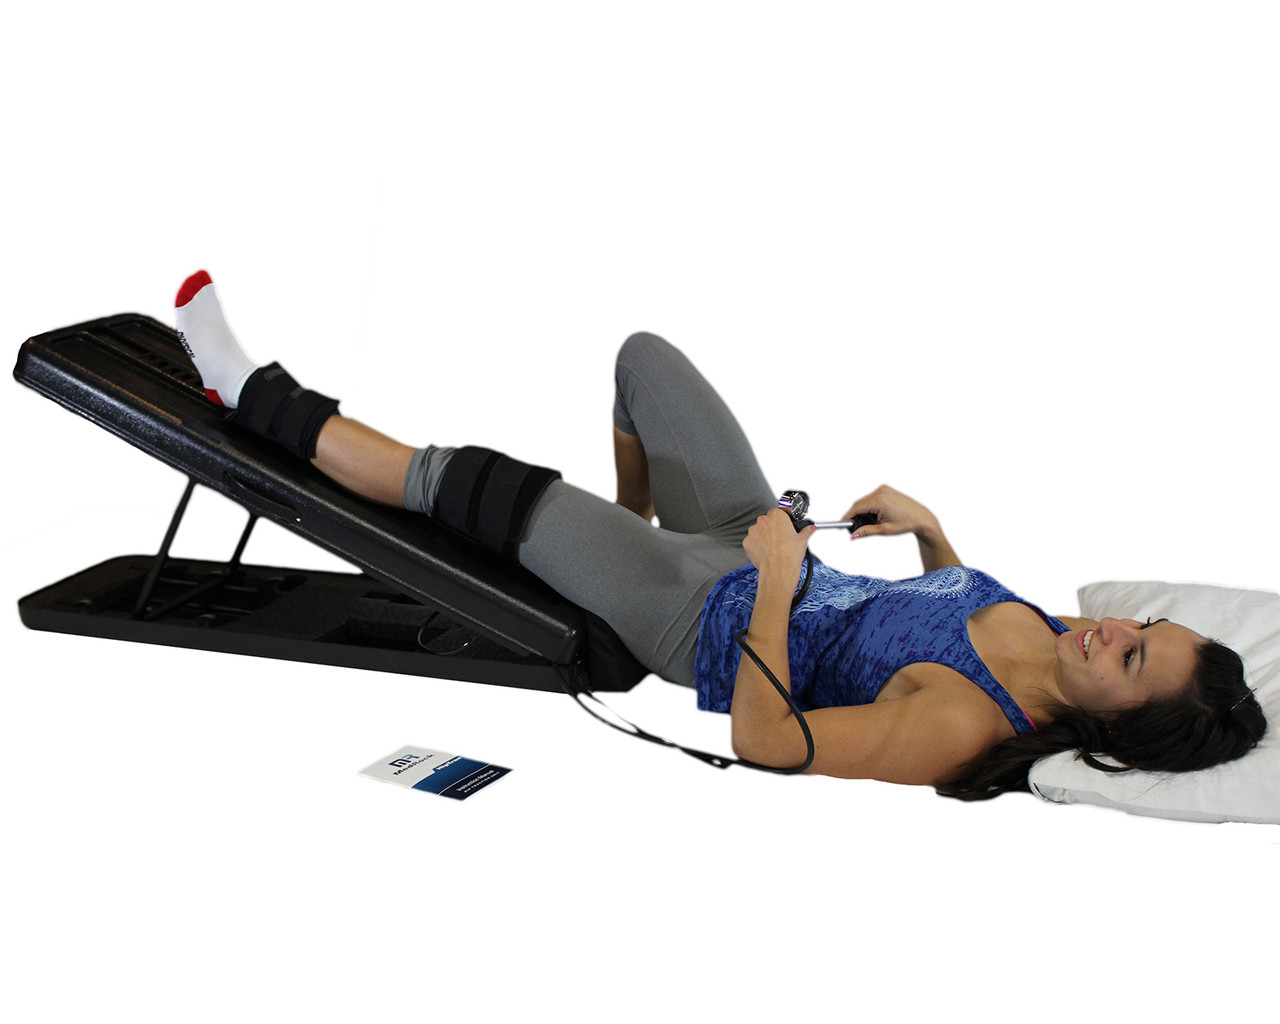 HipTracª Long Axis Hip Traction